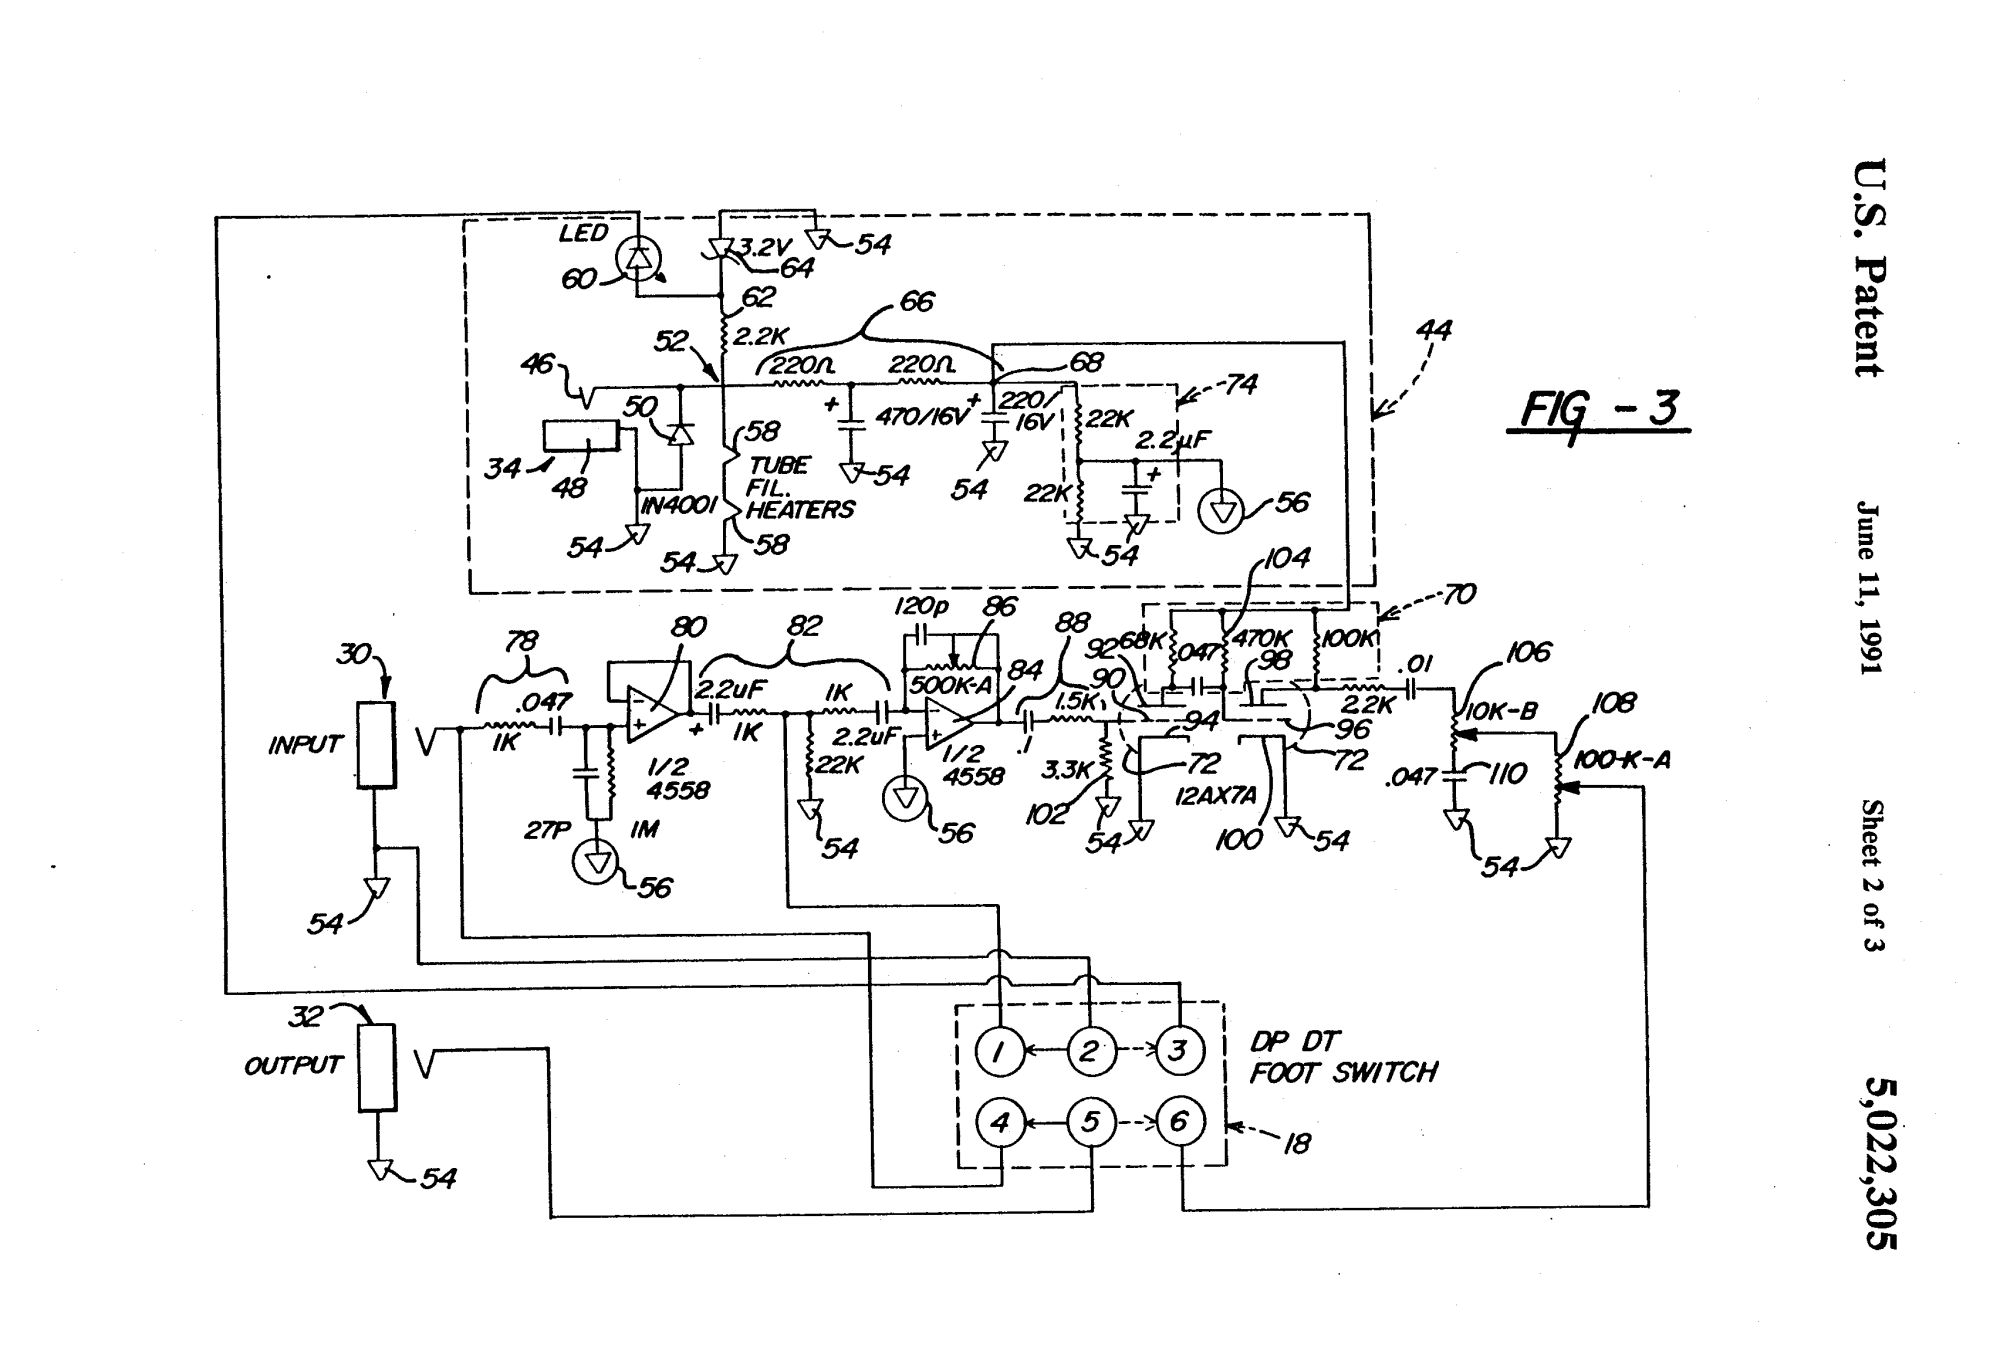 hight resolution of the original butler patent 5022305 from 1989 tube overdrive pedal operable using low voltage dc battery eliminator butler s tube driver circuit